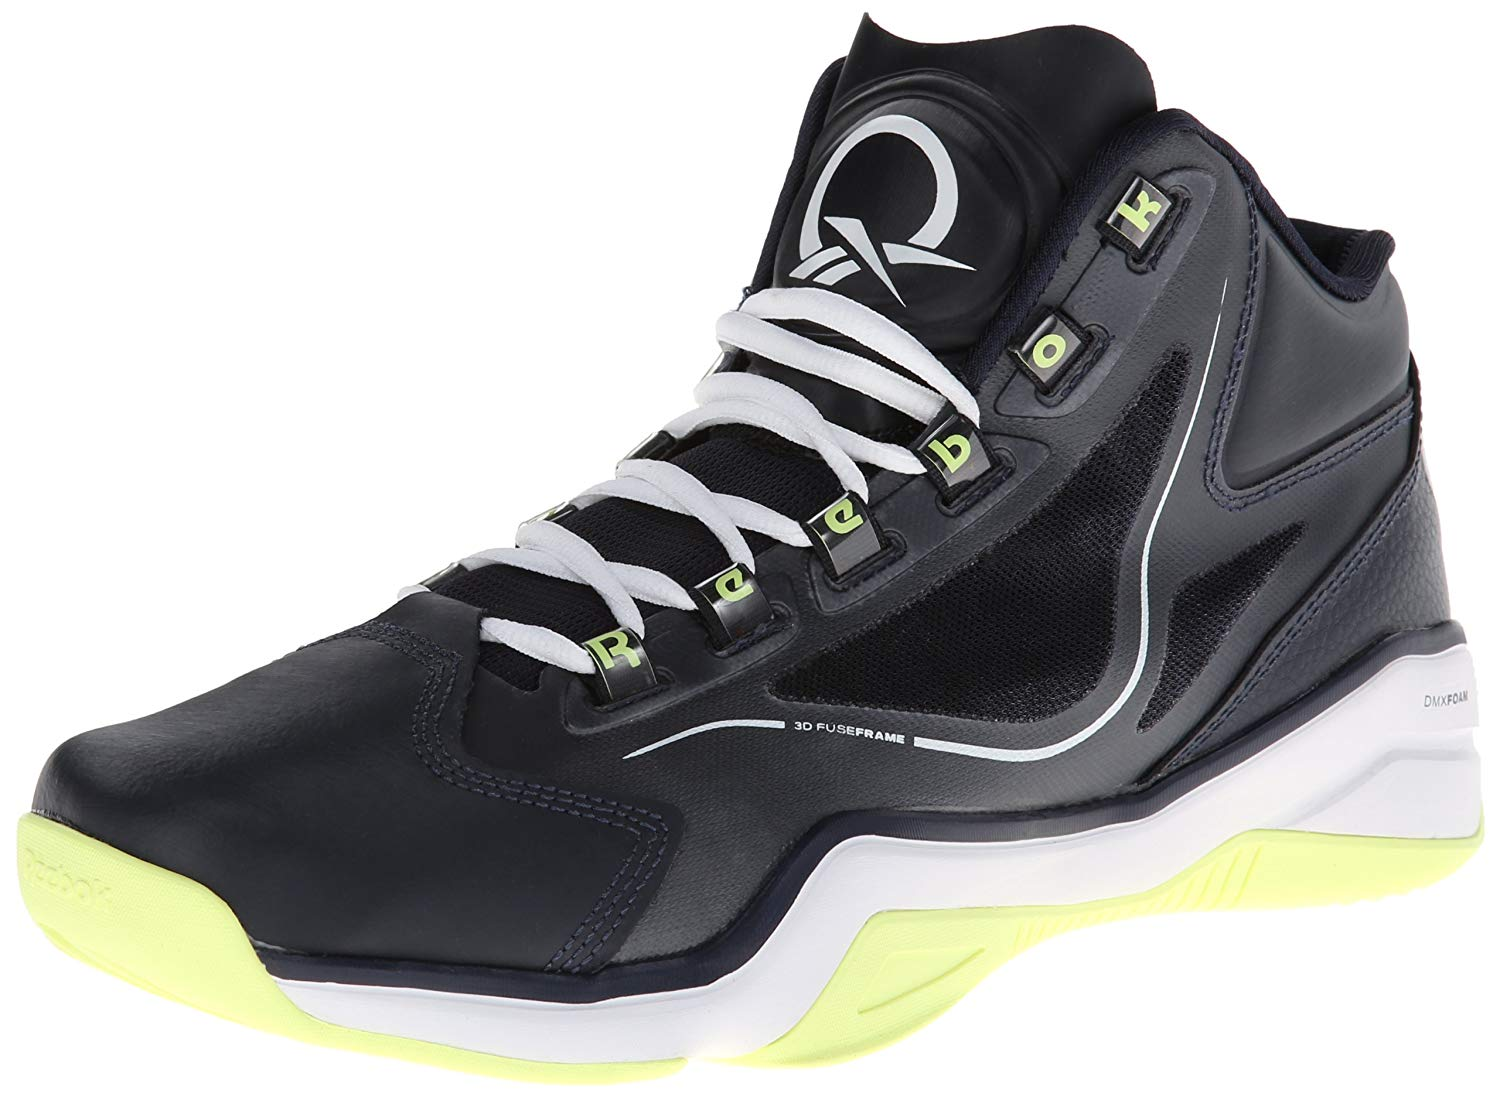 a36a3e8ce131 Get Quotations · Reebok Men s Q96 Cross Examine Basketball Shoe